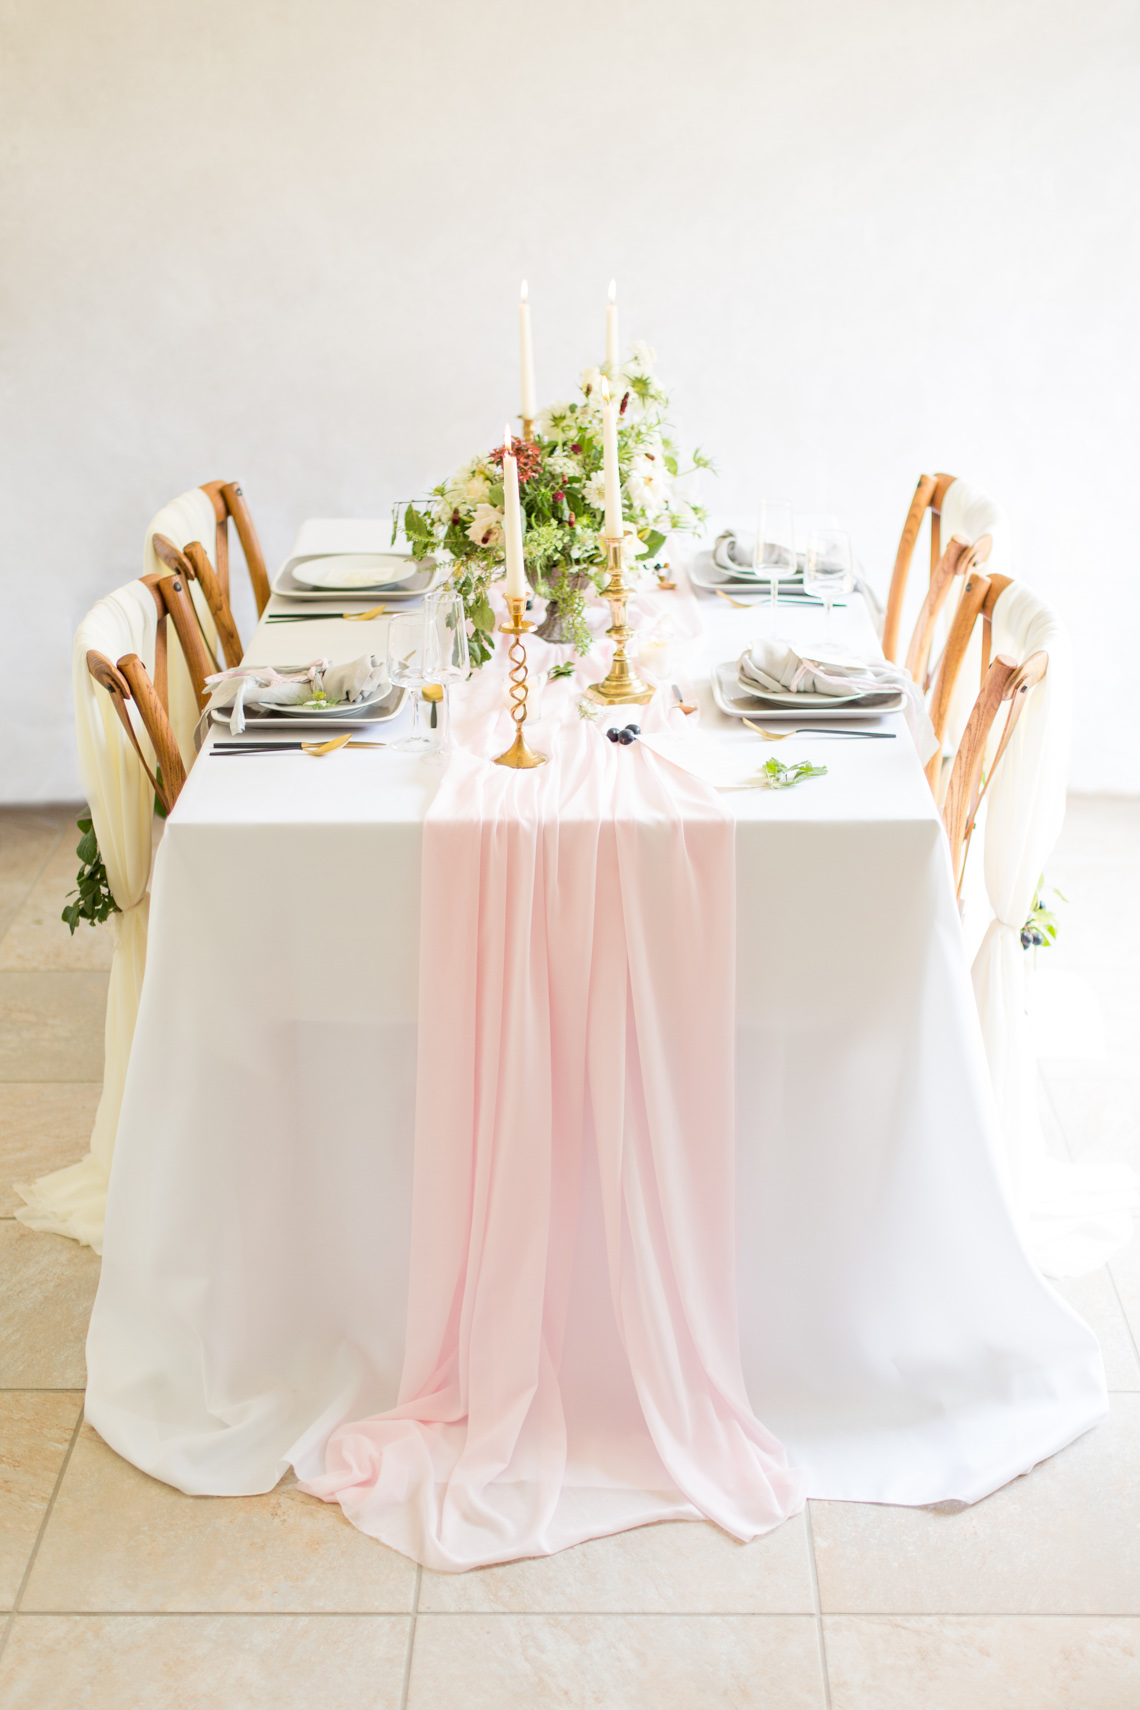 Modern Romantic Wedding Decor Inspirations with Blush Pink - BLOVED Blog